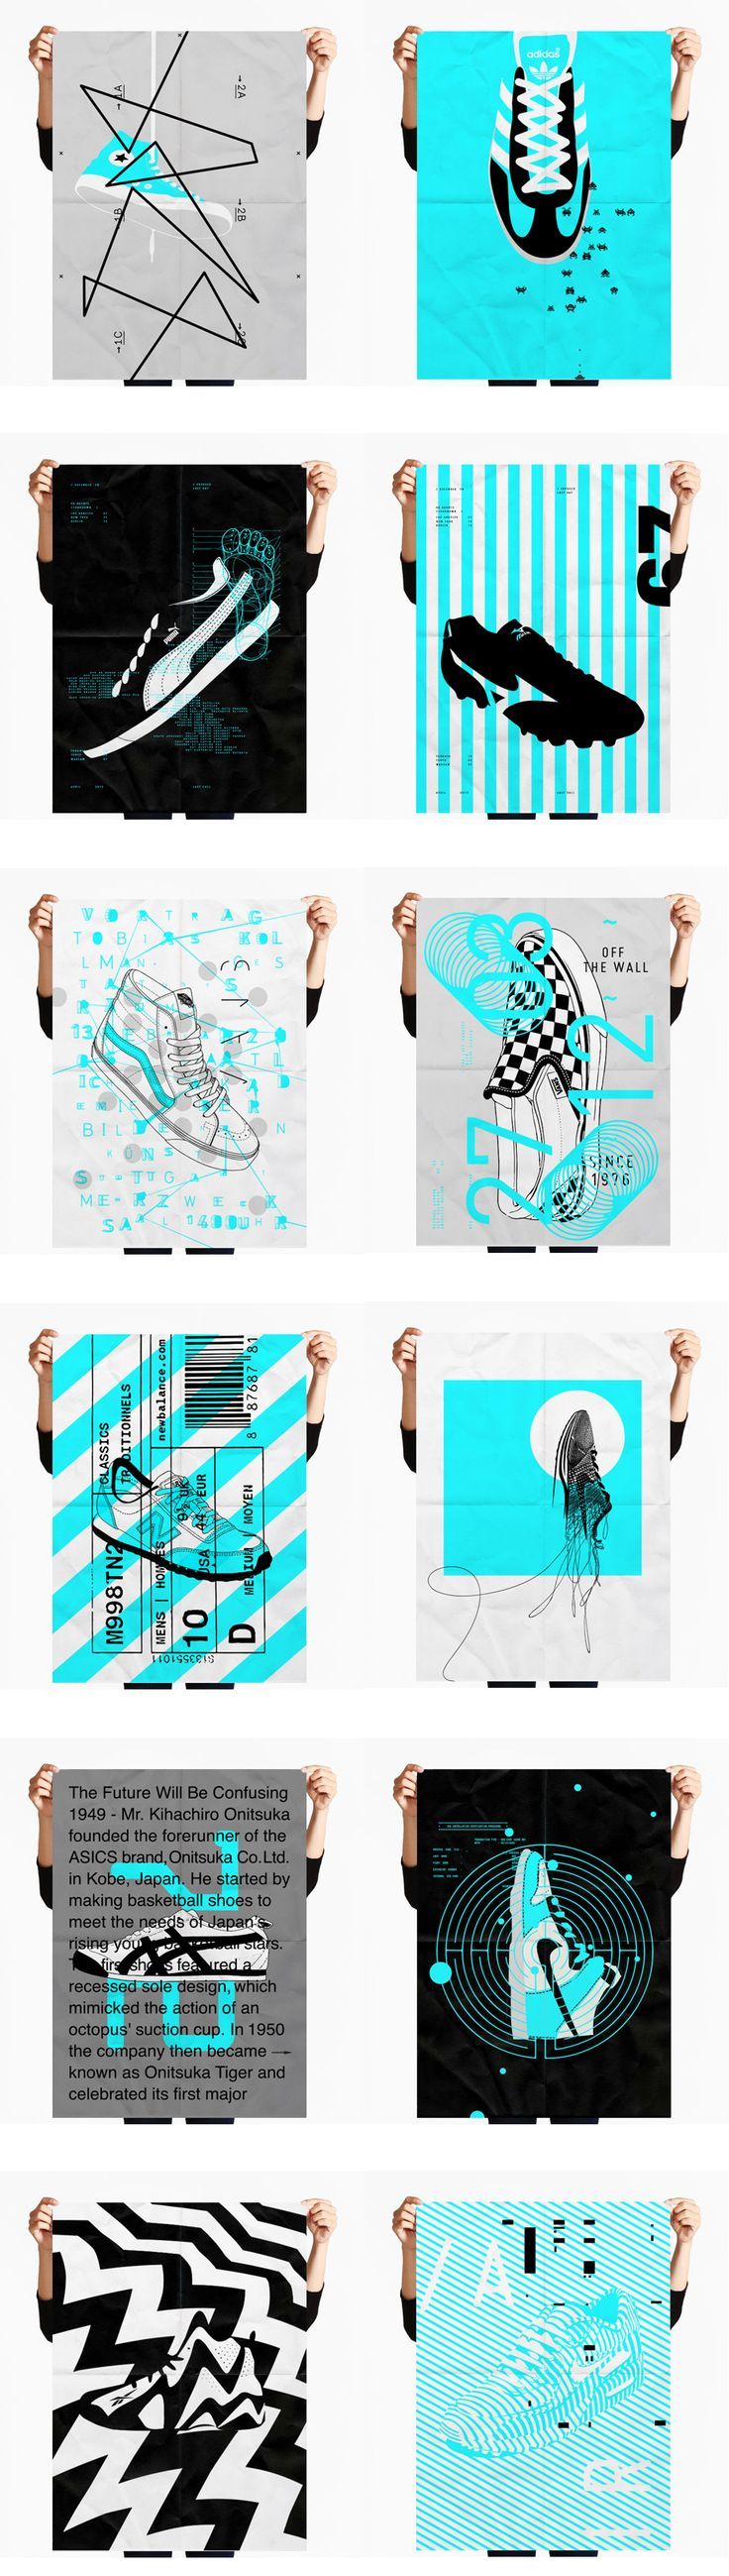 Poster design company - Personal Project Screen Printing Sneakers Poster Series Buy Womens Shoes Shopping Sites For Shoes Shoes And Boots Online Ad